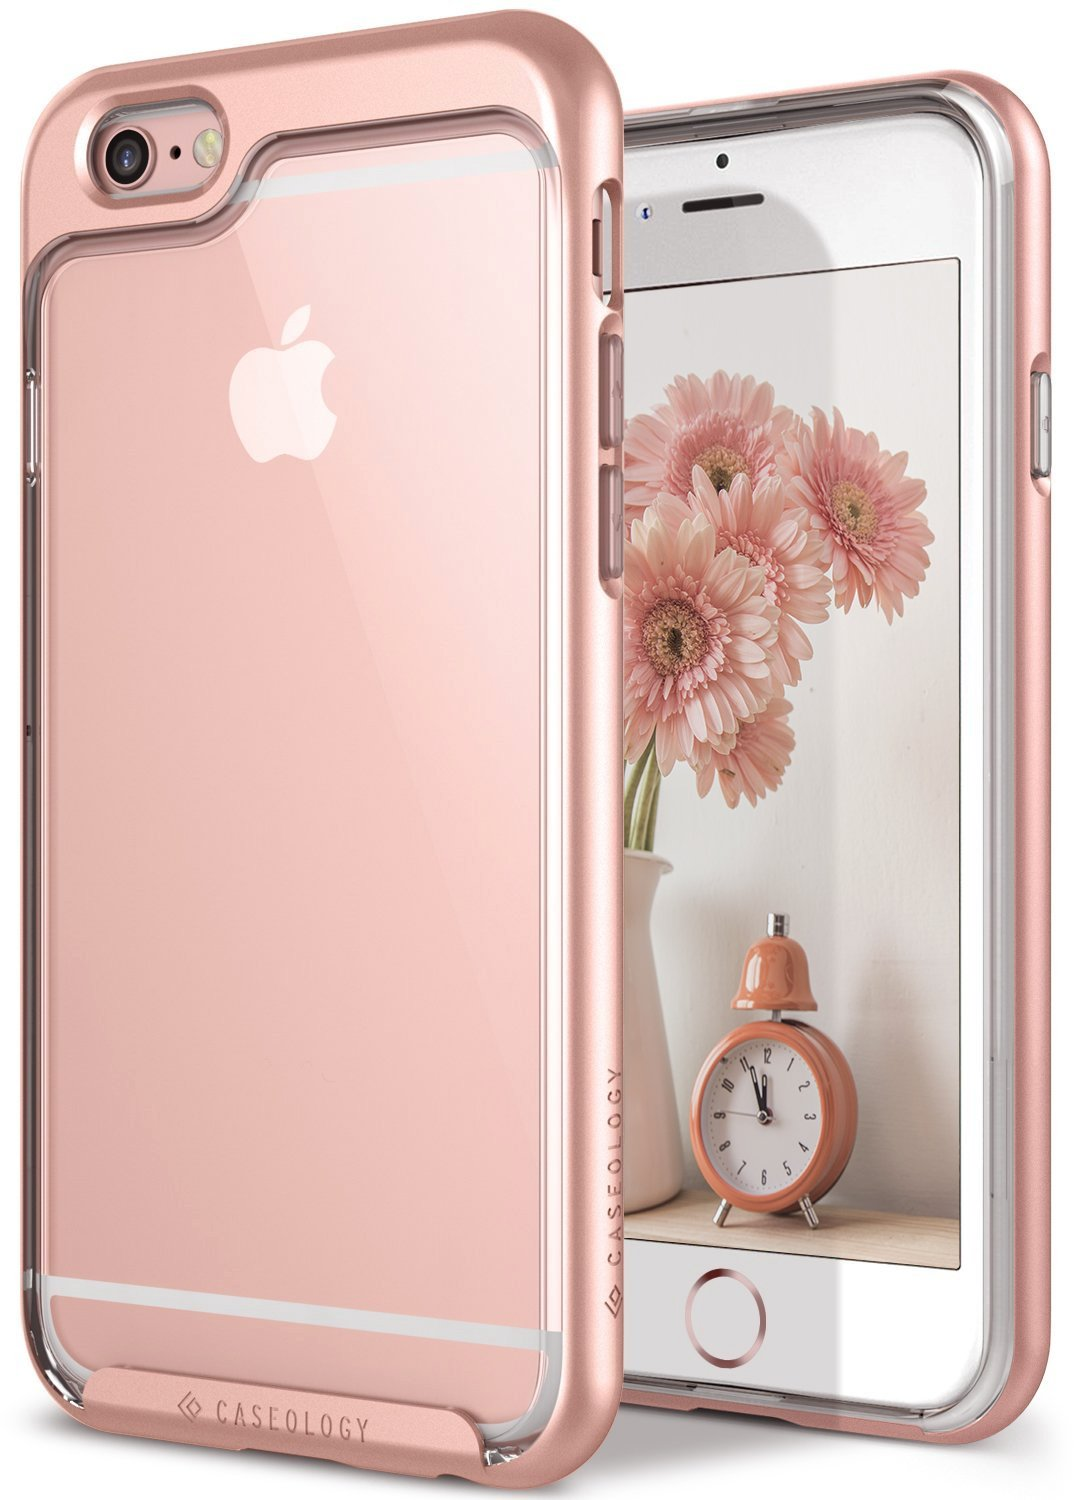 Caseology Skyfall for iPhone 6S Case (2015) / iPhone 6 Case (2014) - Clear Back & Slim Fit - Rose Gold